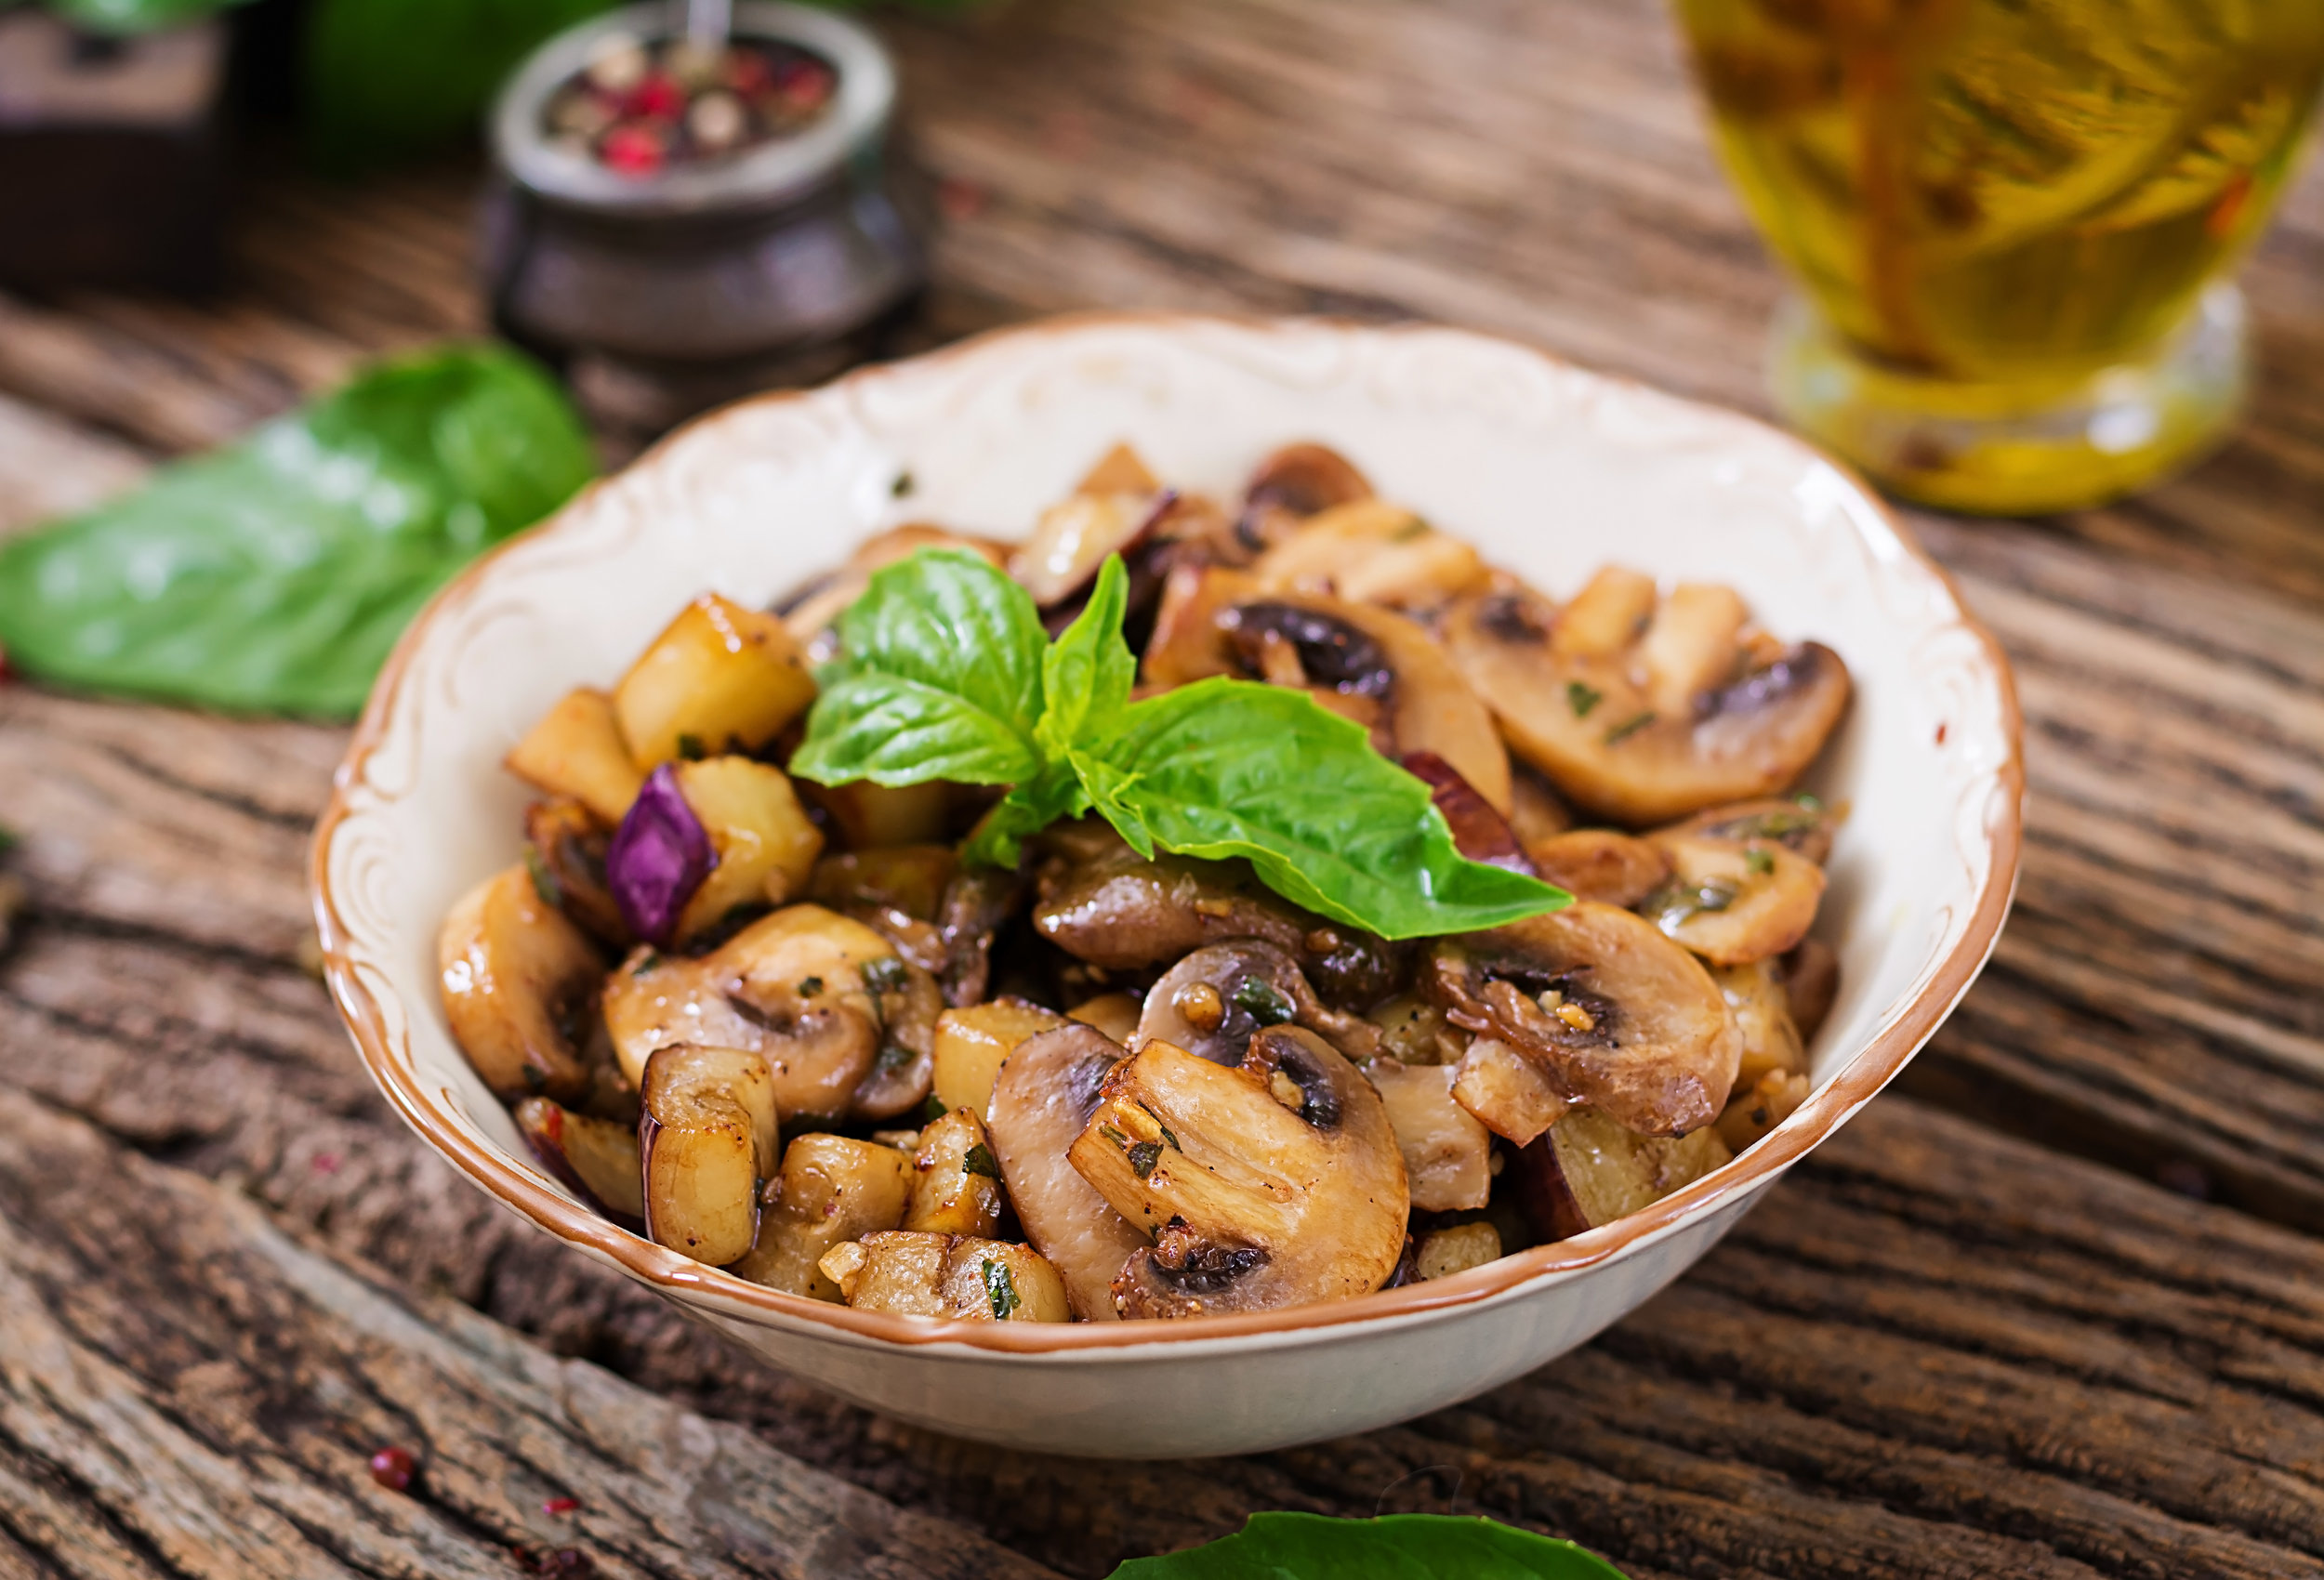 saute-with-mushrooms-eggplant-aubergines-and-9SXNPQF.jpg